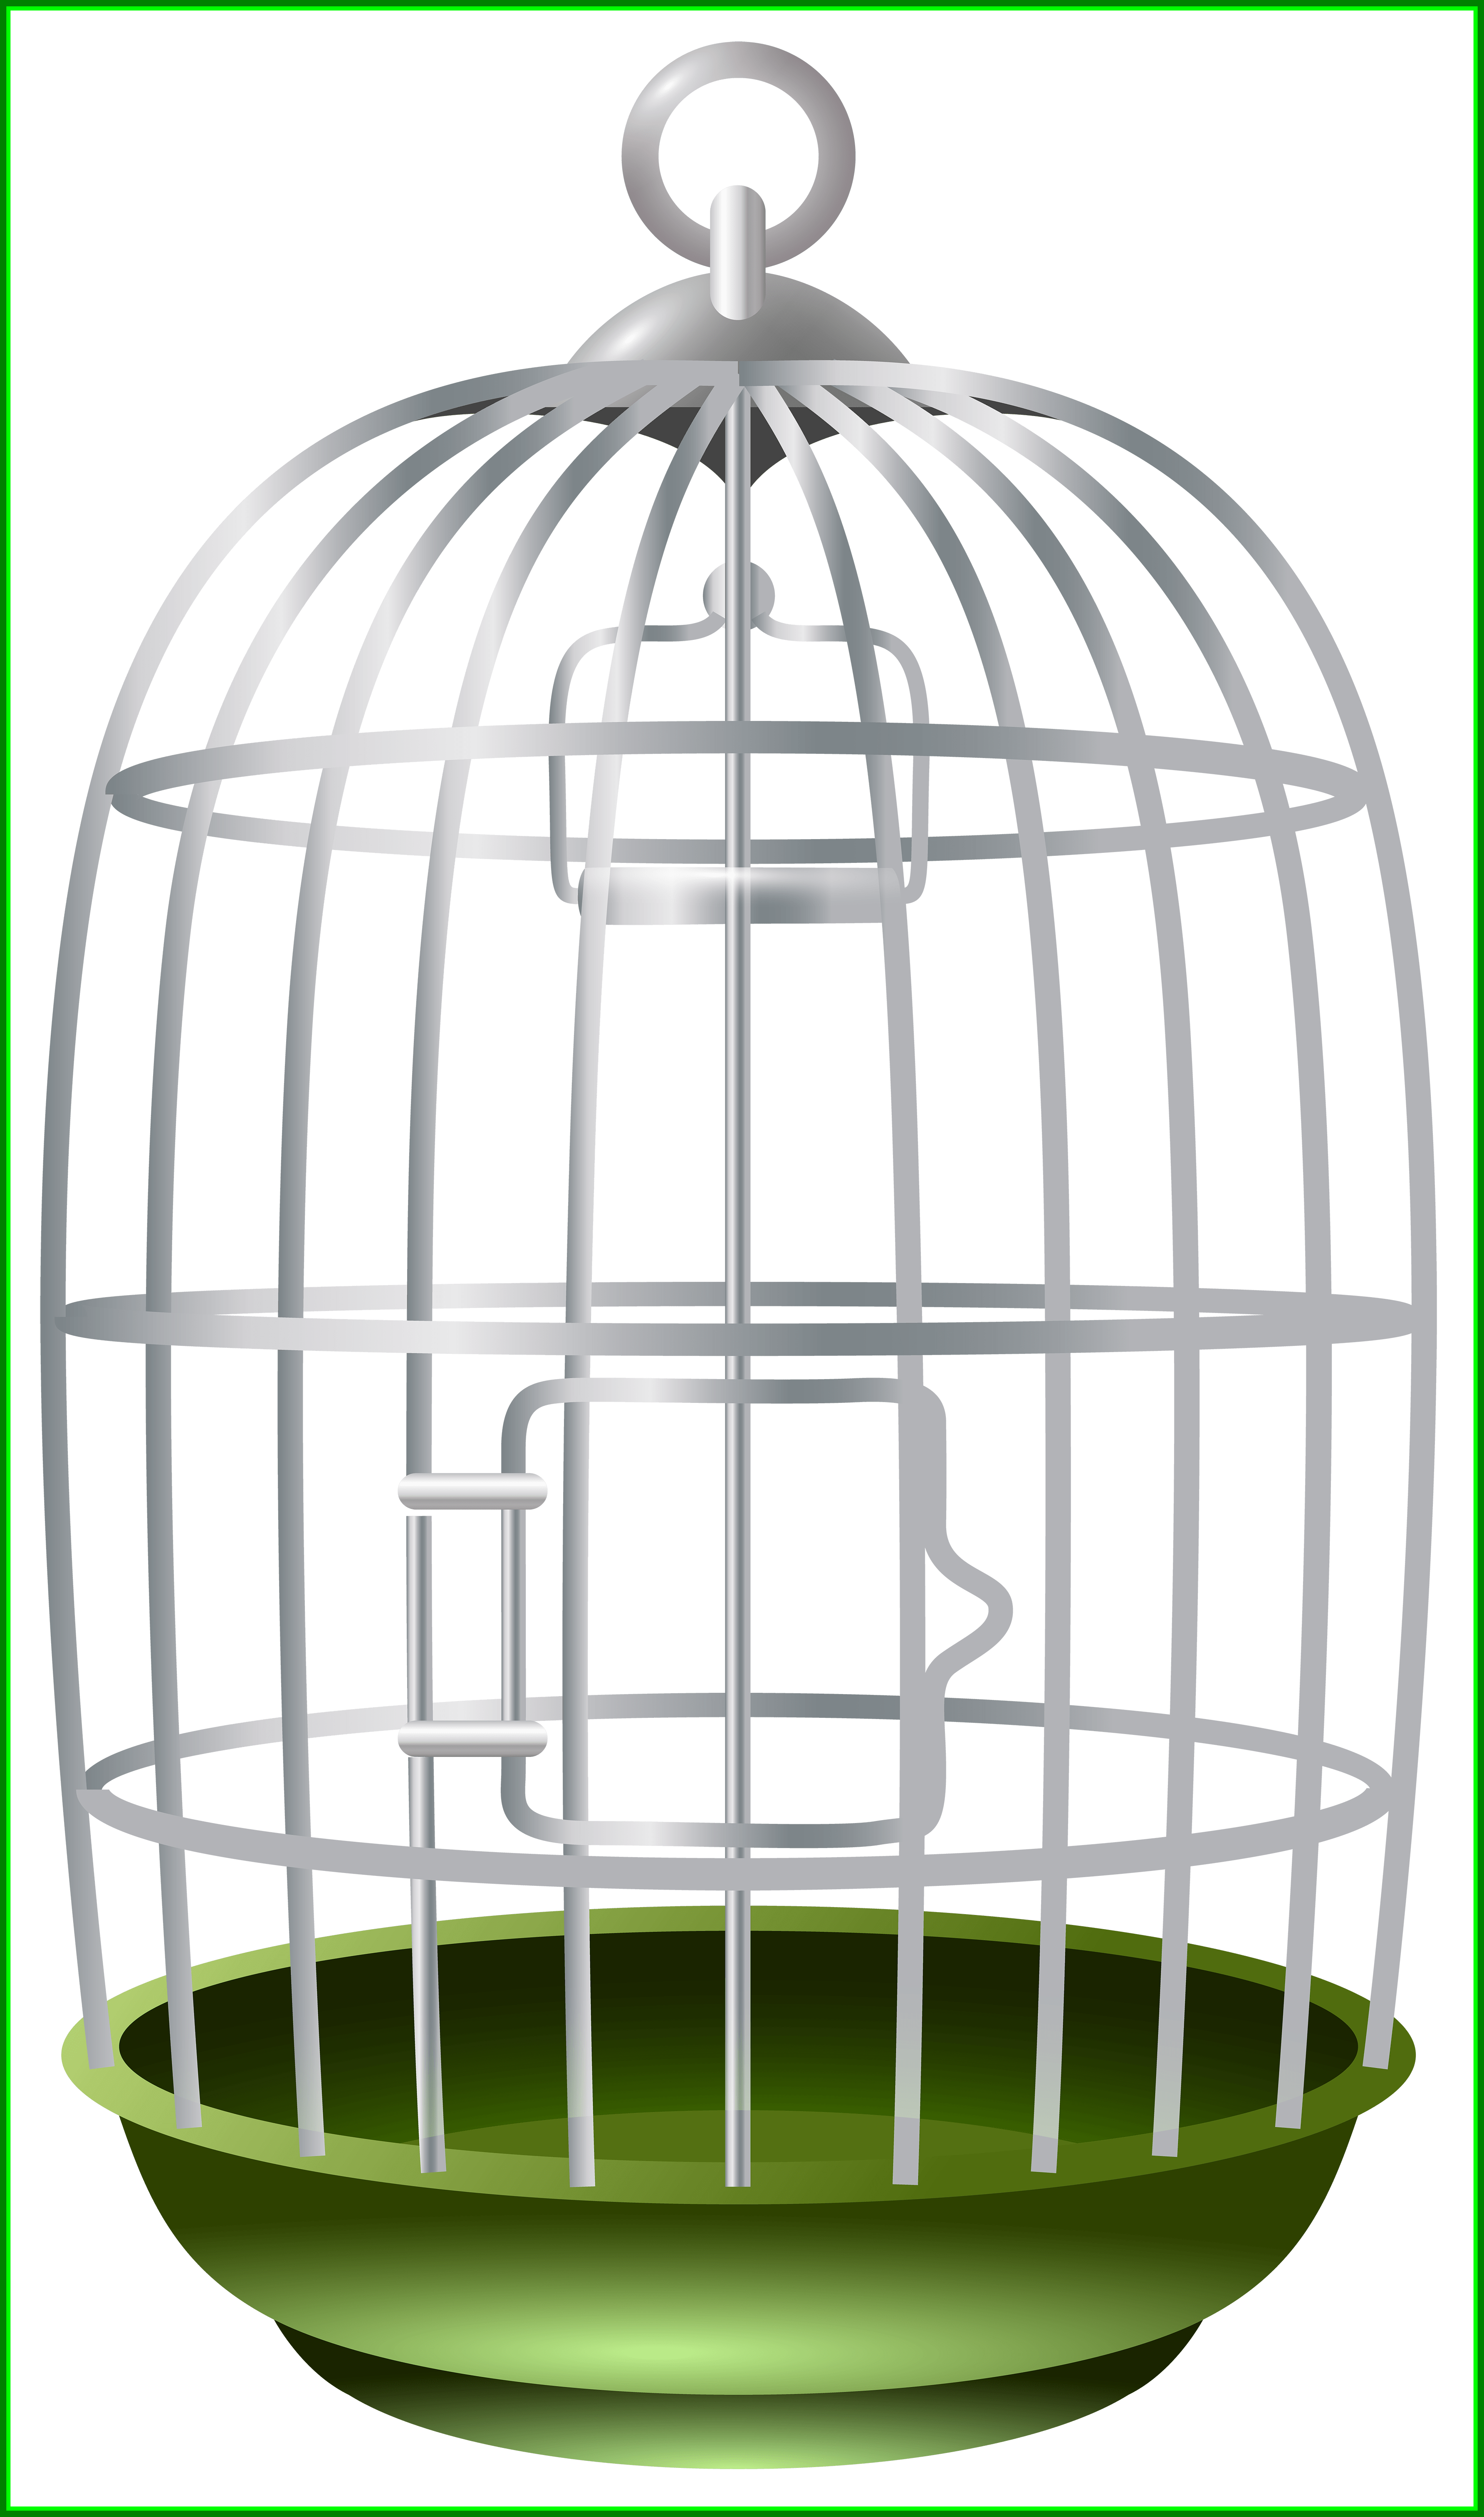 Dog crate clipart clip royalty free stock Fascinating Birdcage Png Clip Art Best Web Clipart Of Dog Crate ... clip royalty free stock